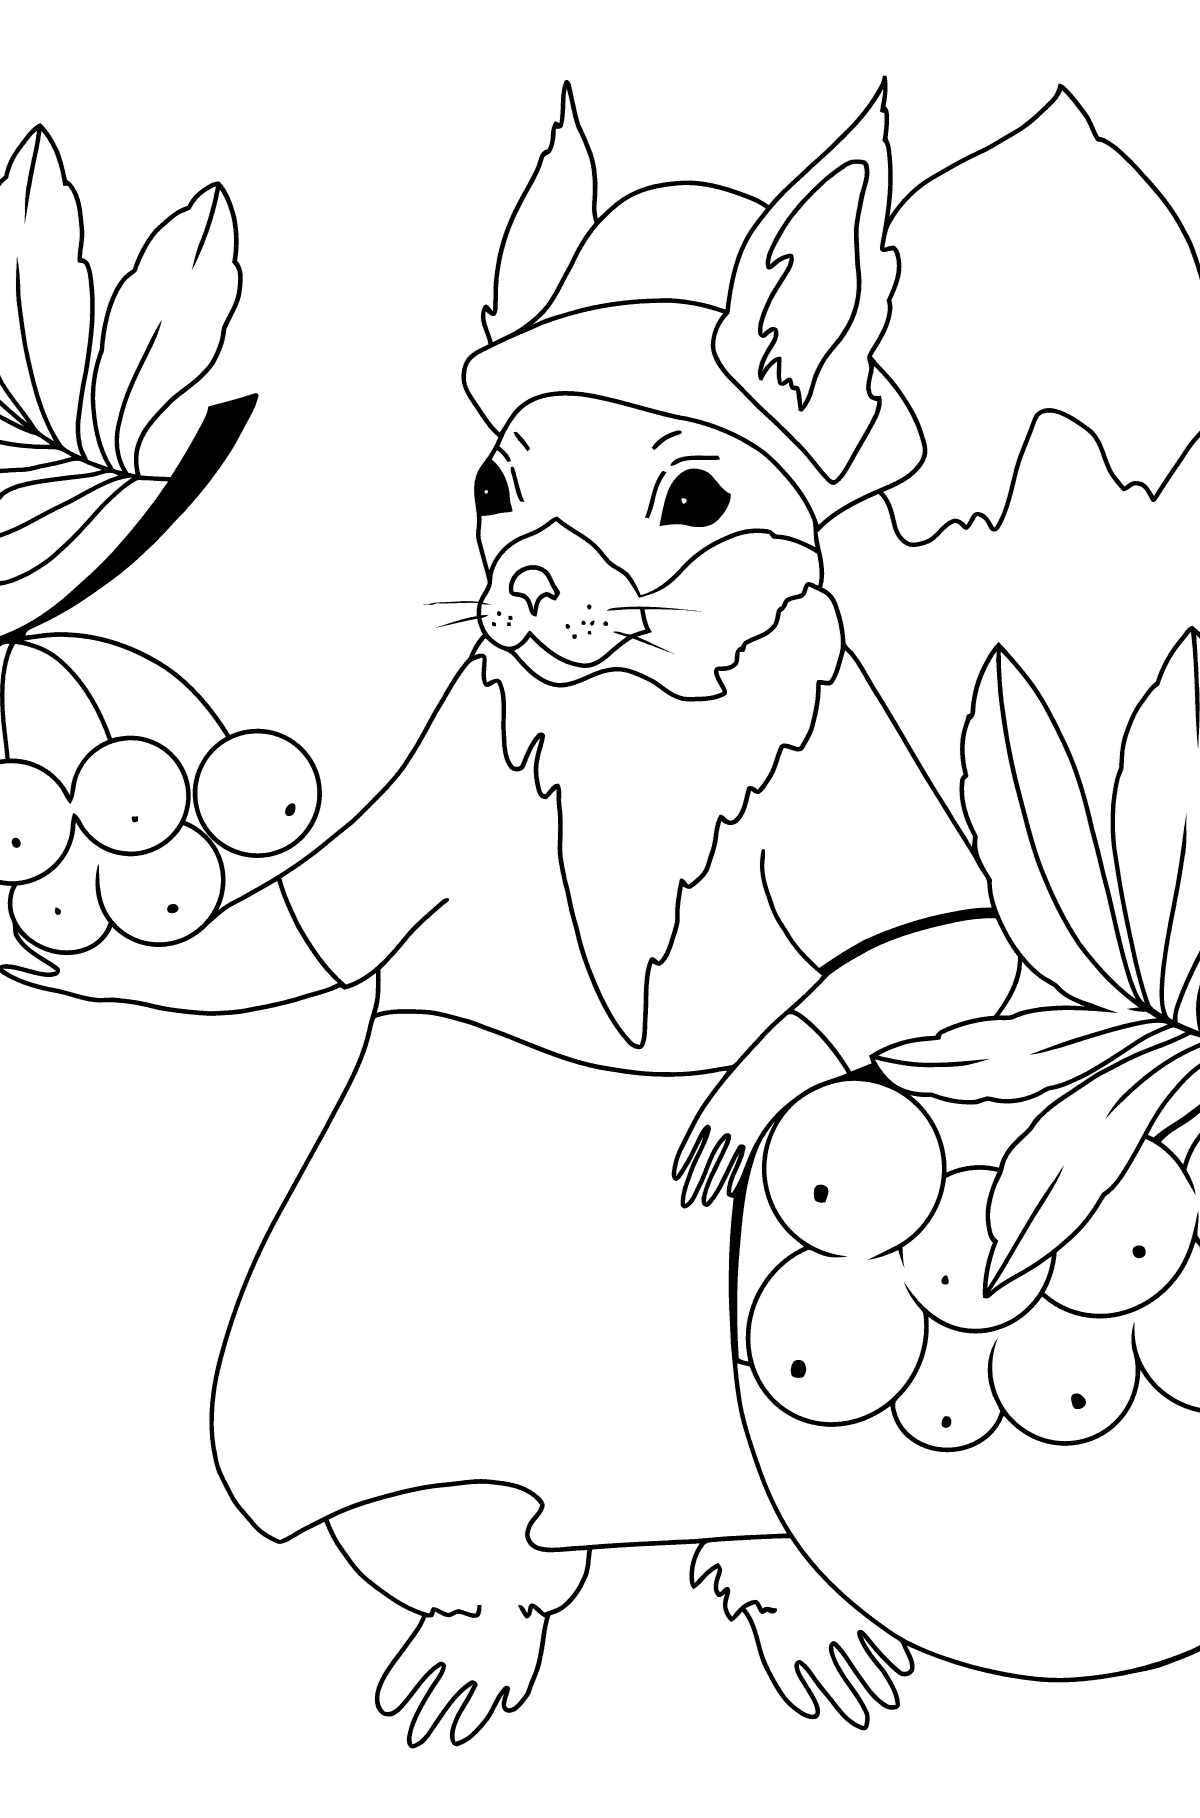 Autumn Coloring Page - A Squirrel with a Rowan for Kids